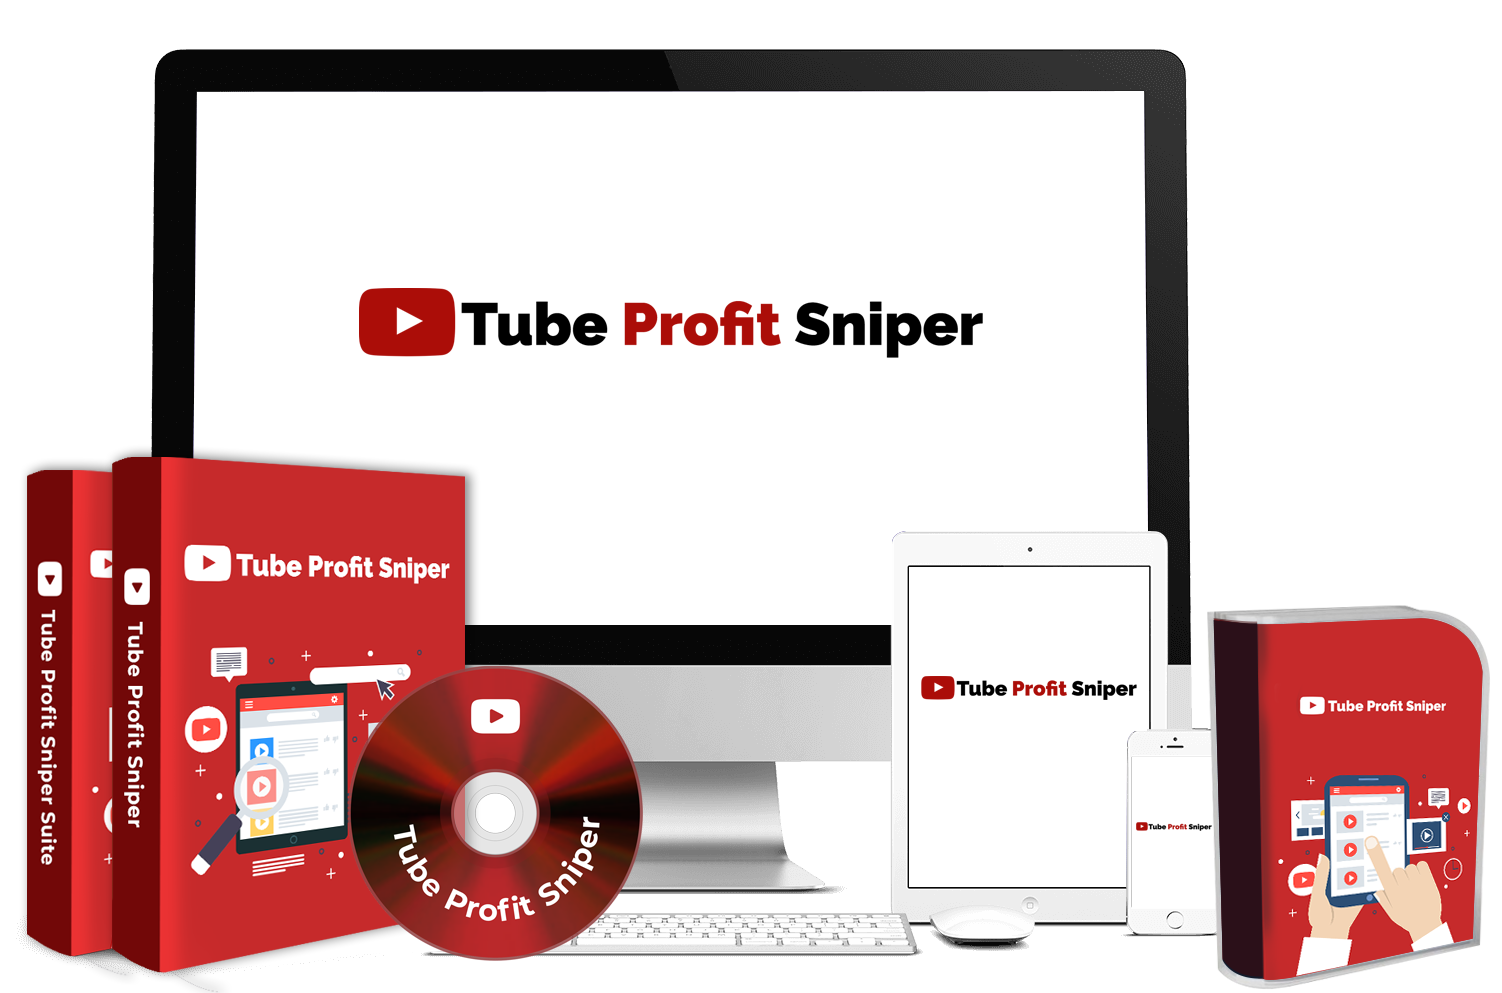 Tube Profit Sniper Download